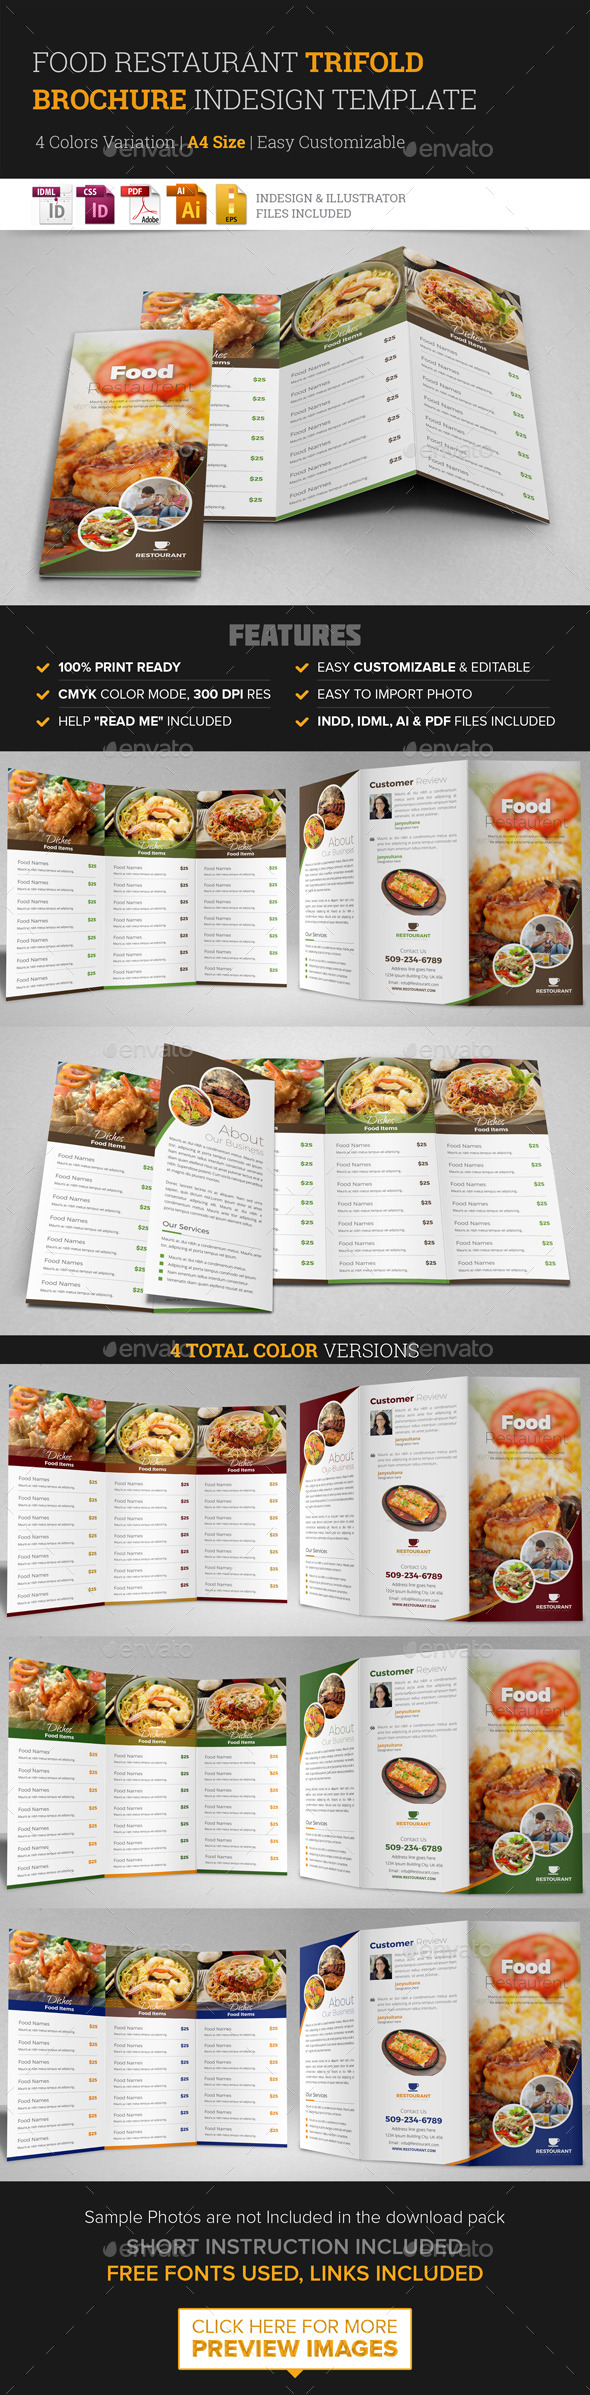 Food Restaurant Trifold Brochure InDesign Template - Corporate Brochures